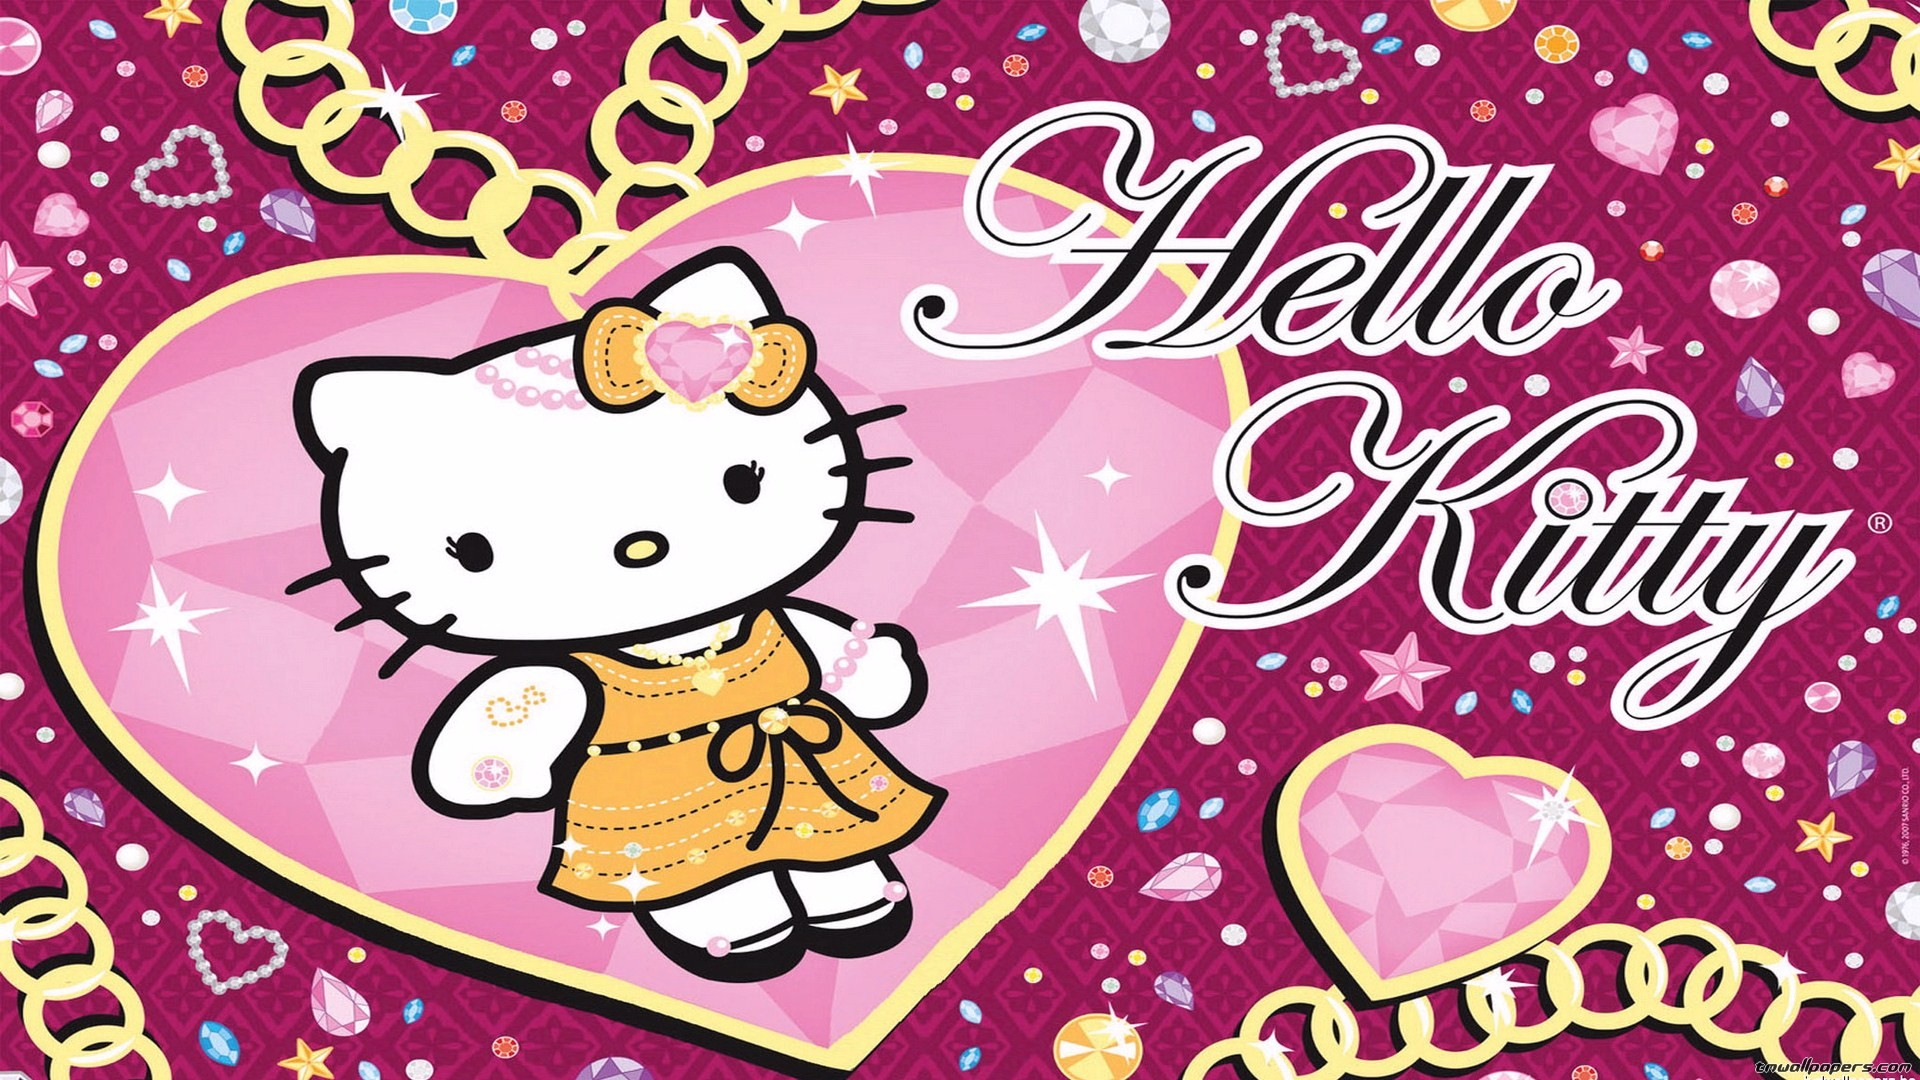 Hello Kitty Wallpaper Download Free Stunning Wallpapers For Desktop And Mobile Devices In Any